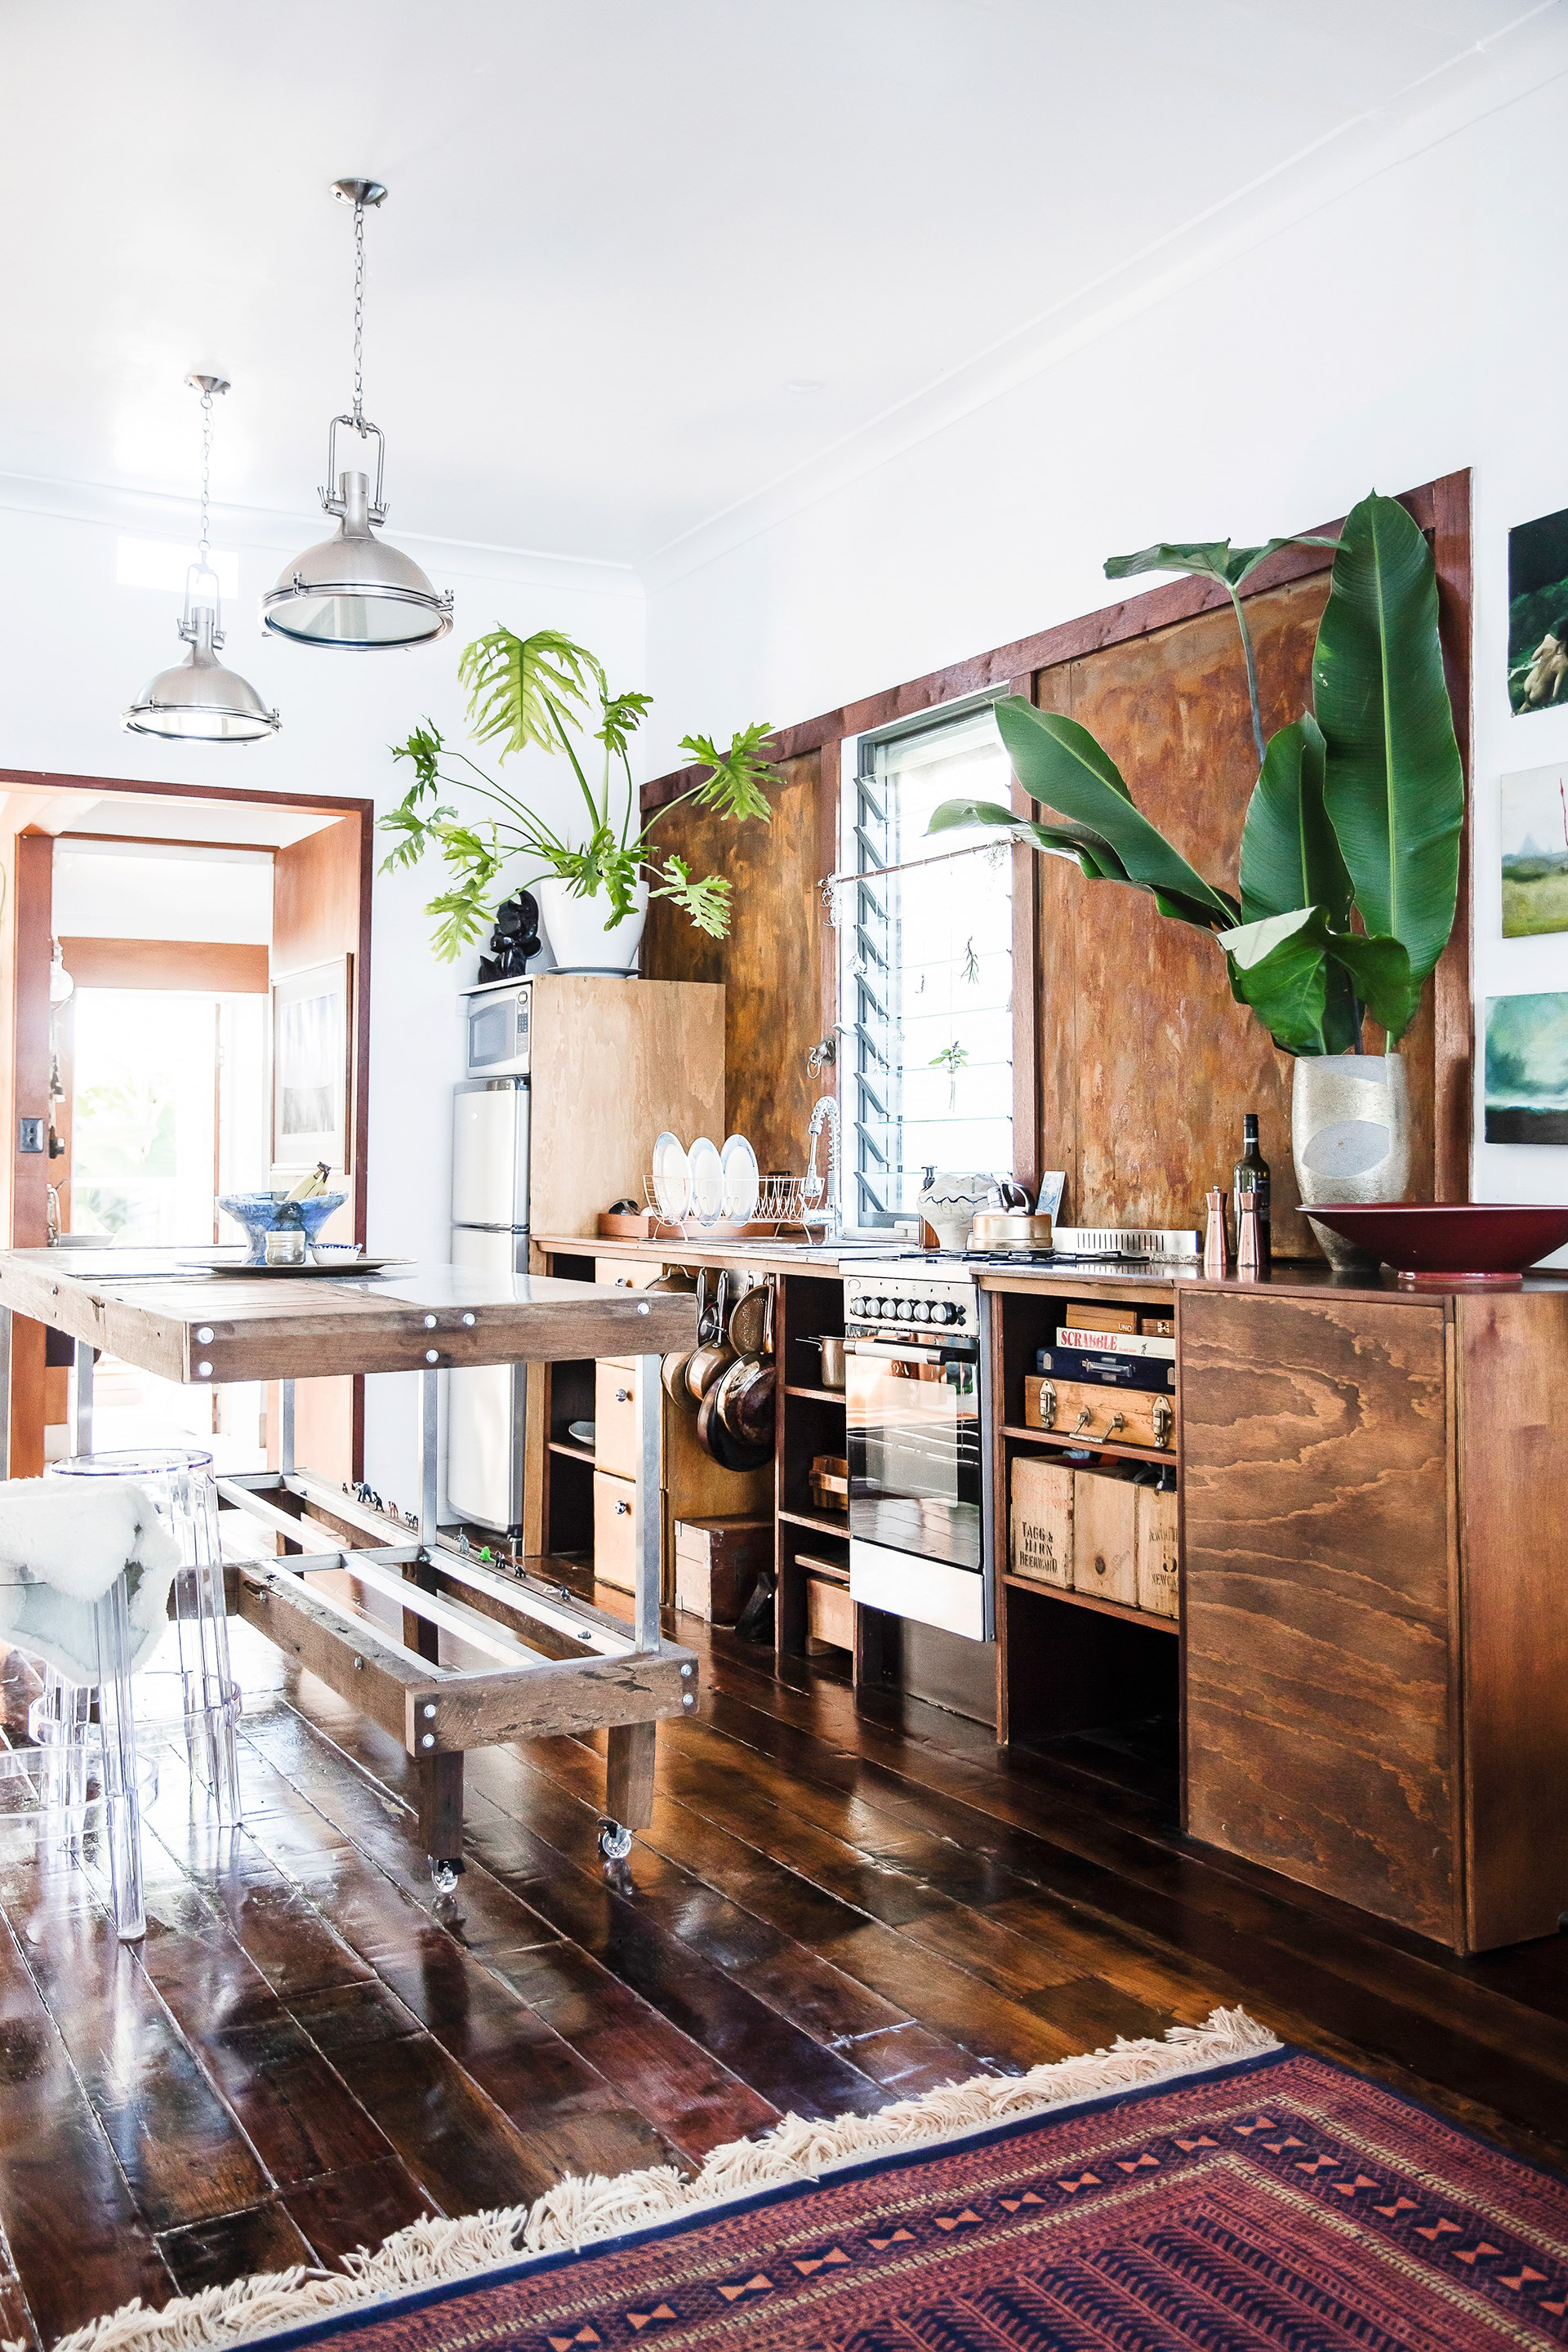 """When you strip a kitchen down to the most basic materials you can create a space that feels more like an interior and less like a page out of a hardware catalogue. The owners of this rustic [Newcastle home](http://www.homestolove.com.au/boho-style-house-tour-in-newcastle-4051